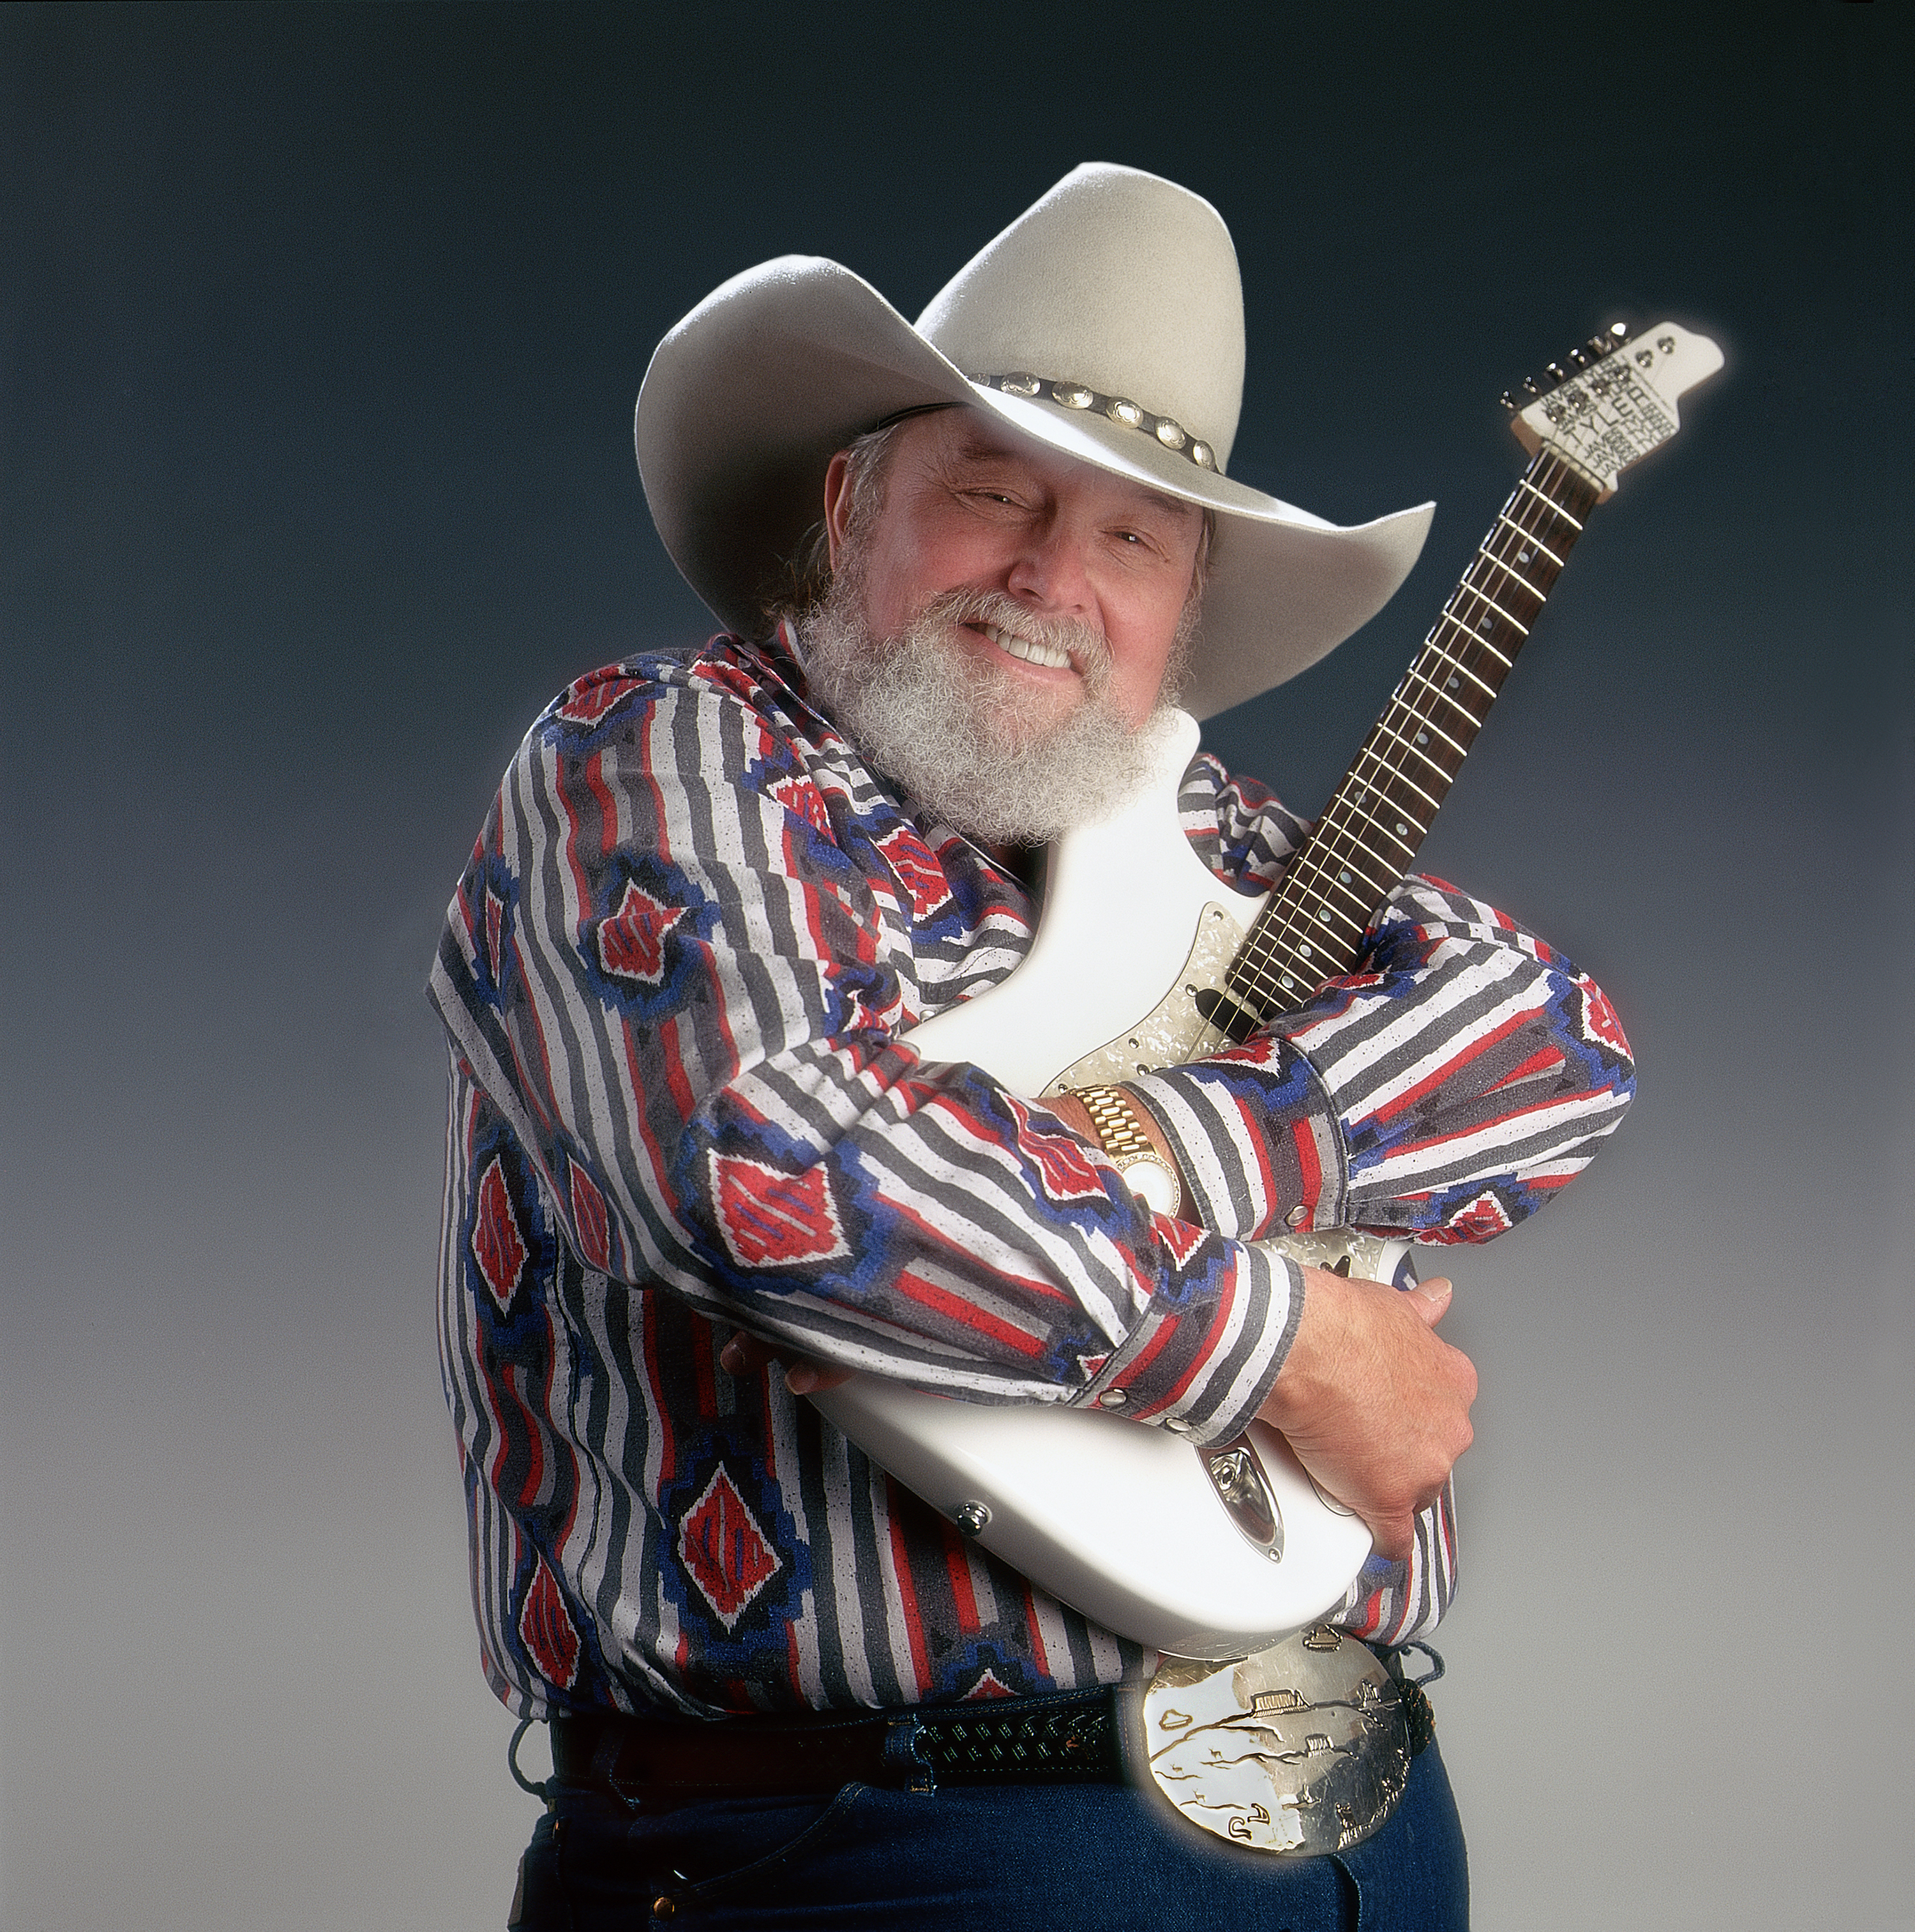 American country and bluegrass musician Charlie Daniels with his guitar during a 1997 photo shoot in Wilmington, North Carolina.